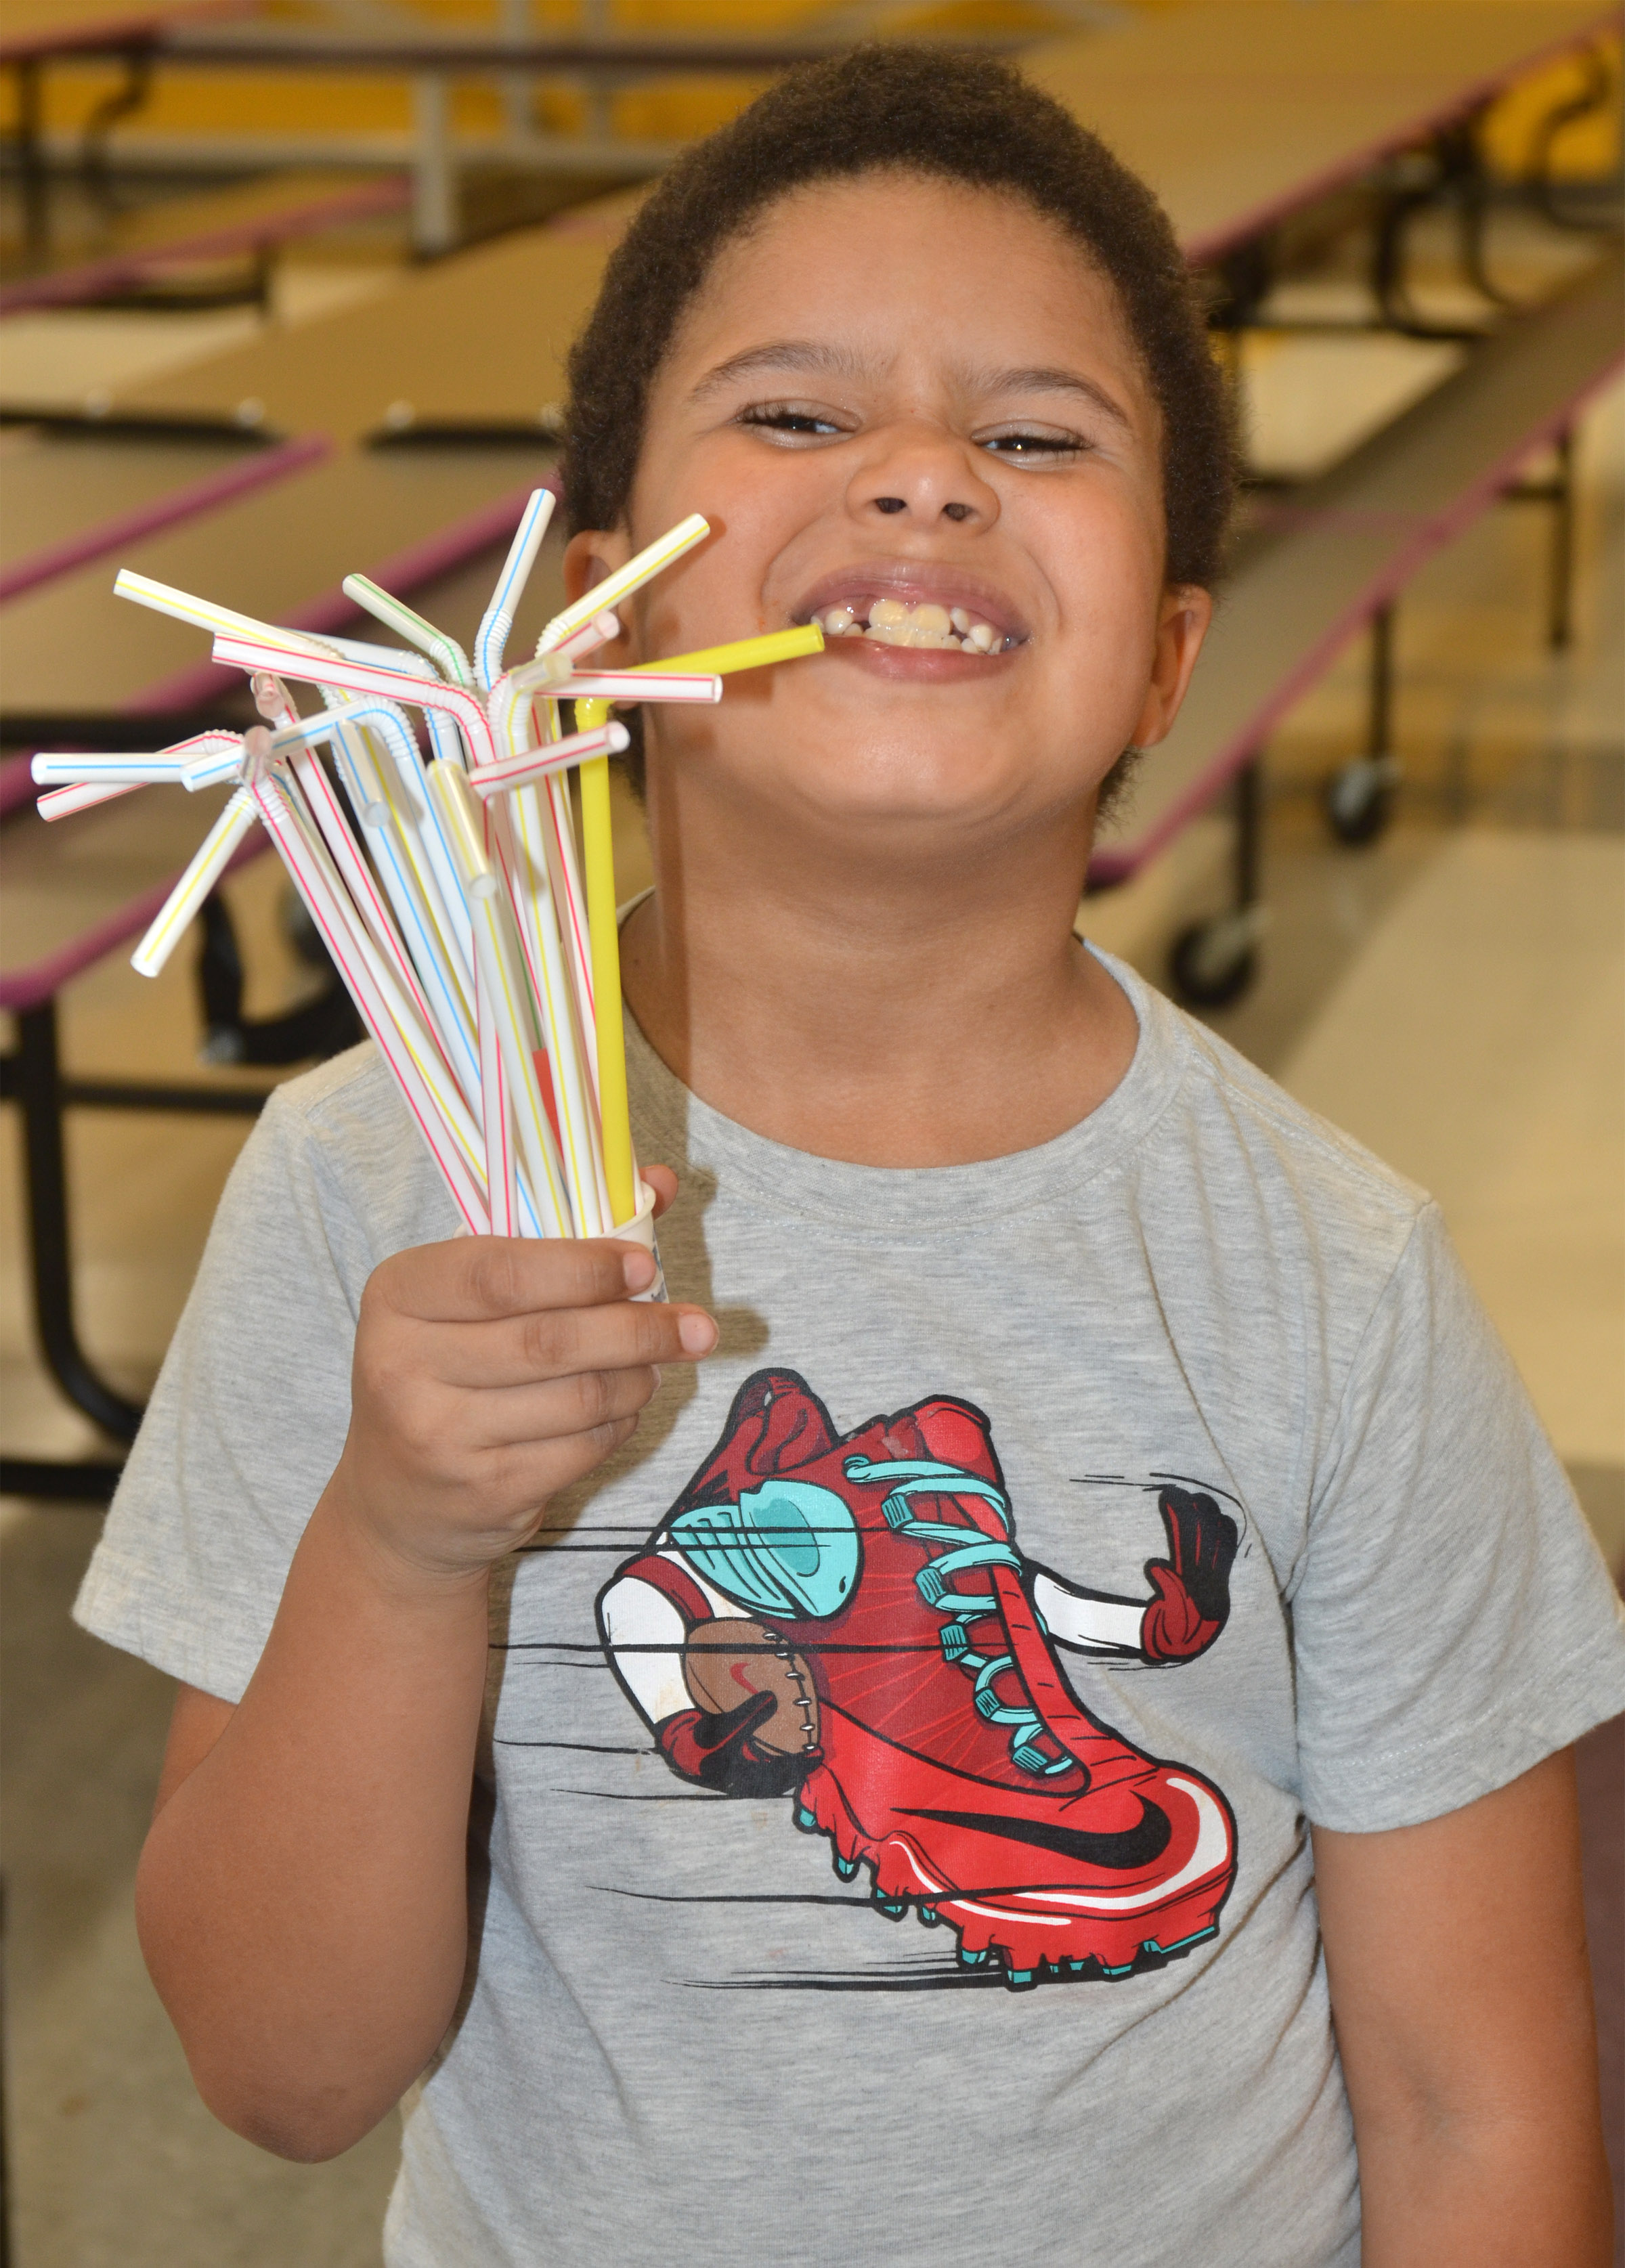 CES first-grader Navon Copeland smiles with the sculpture he made out of Play-Doh and straws.